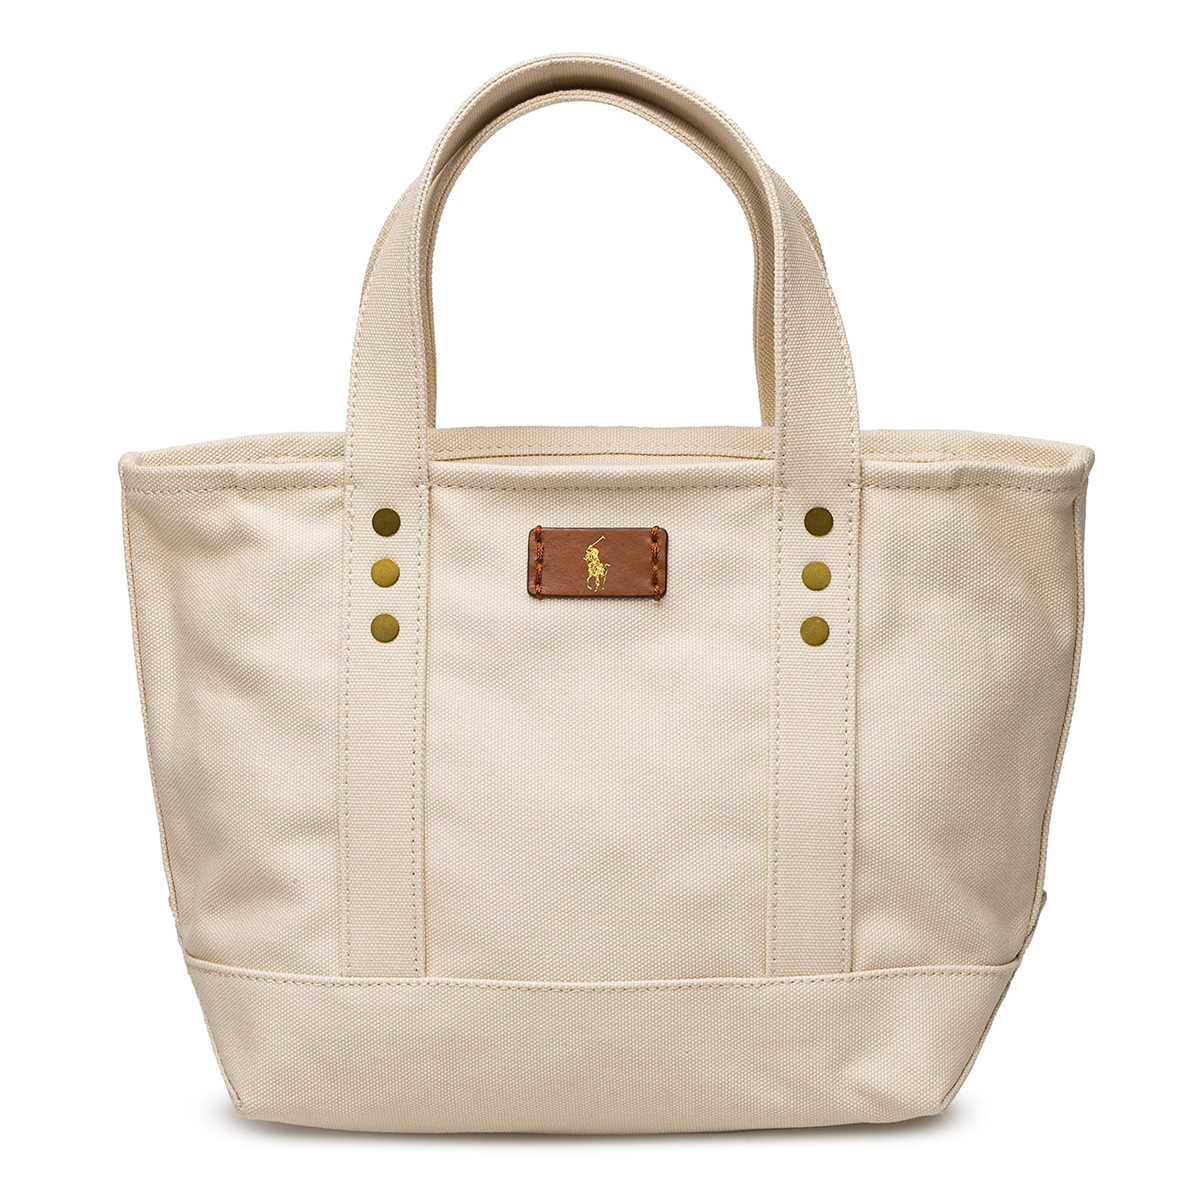 Polo Ralph Lauren Polo Ralph Lauren handbag tote bag shoulder bag Lady s  men canvas purse tote bag shoulder back natural beige mini-new work bag  attending ... 70cb94e474f32